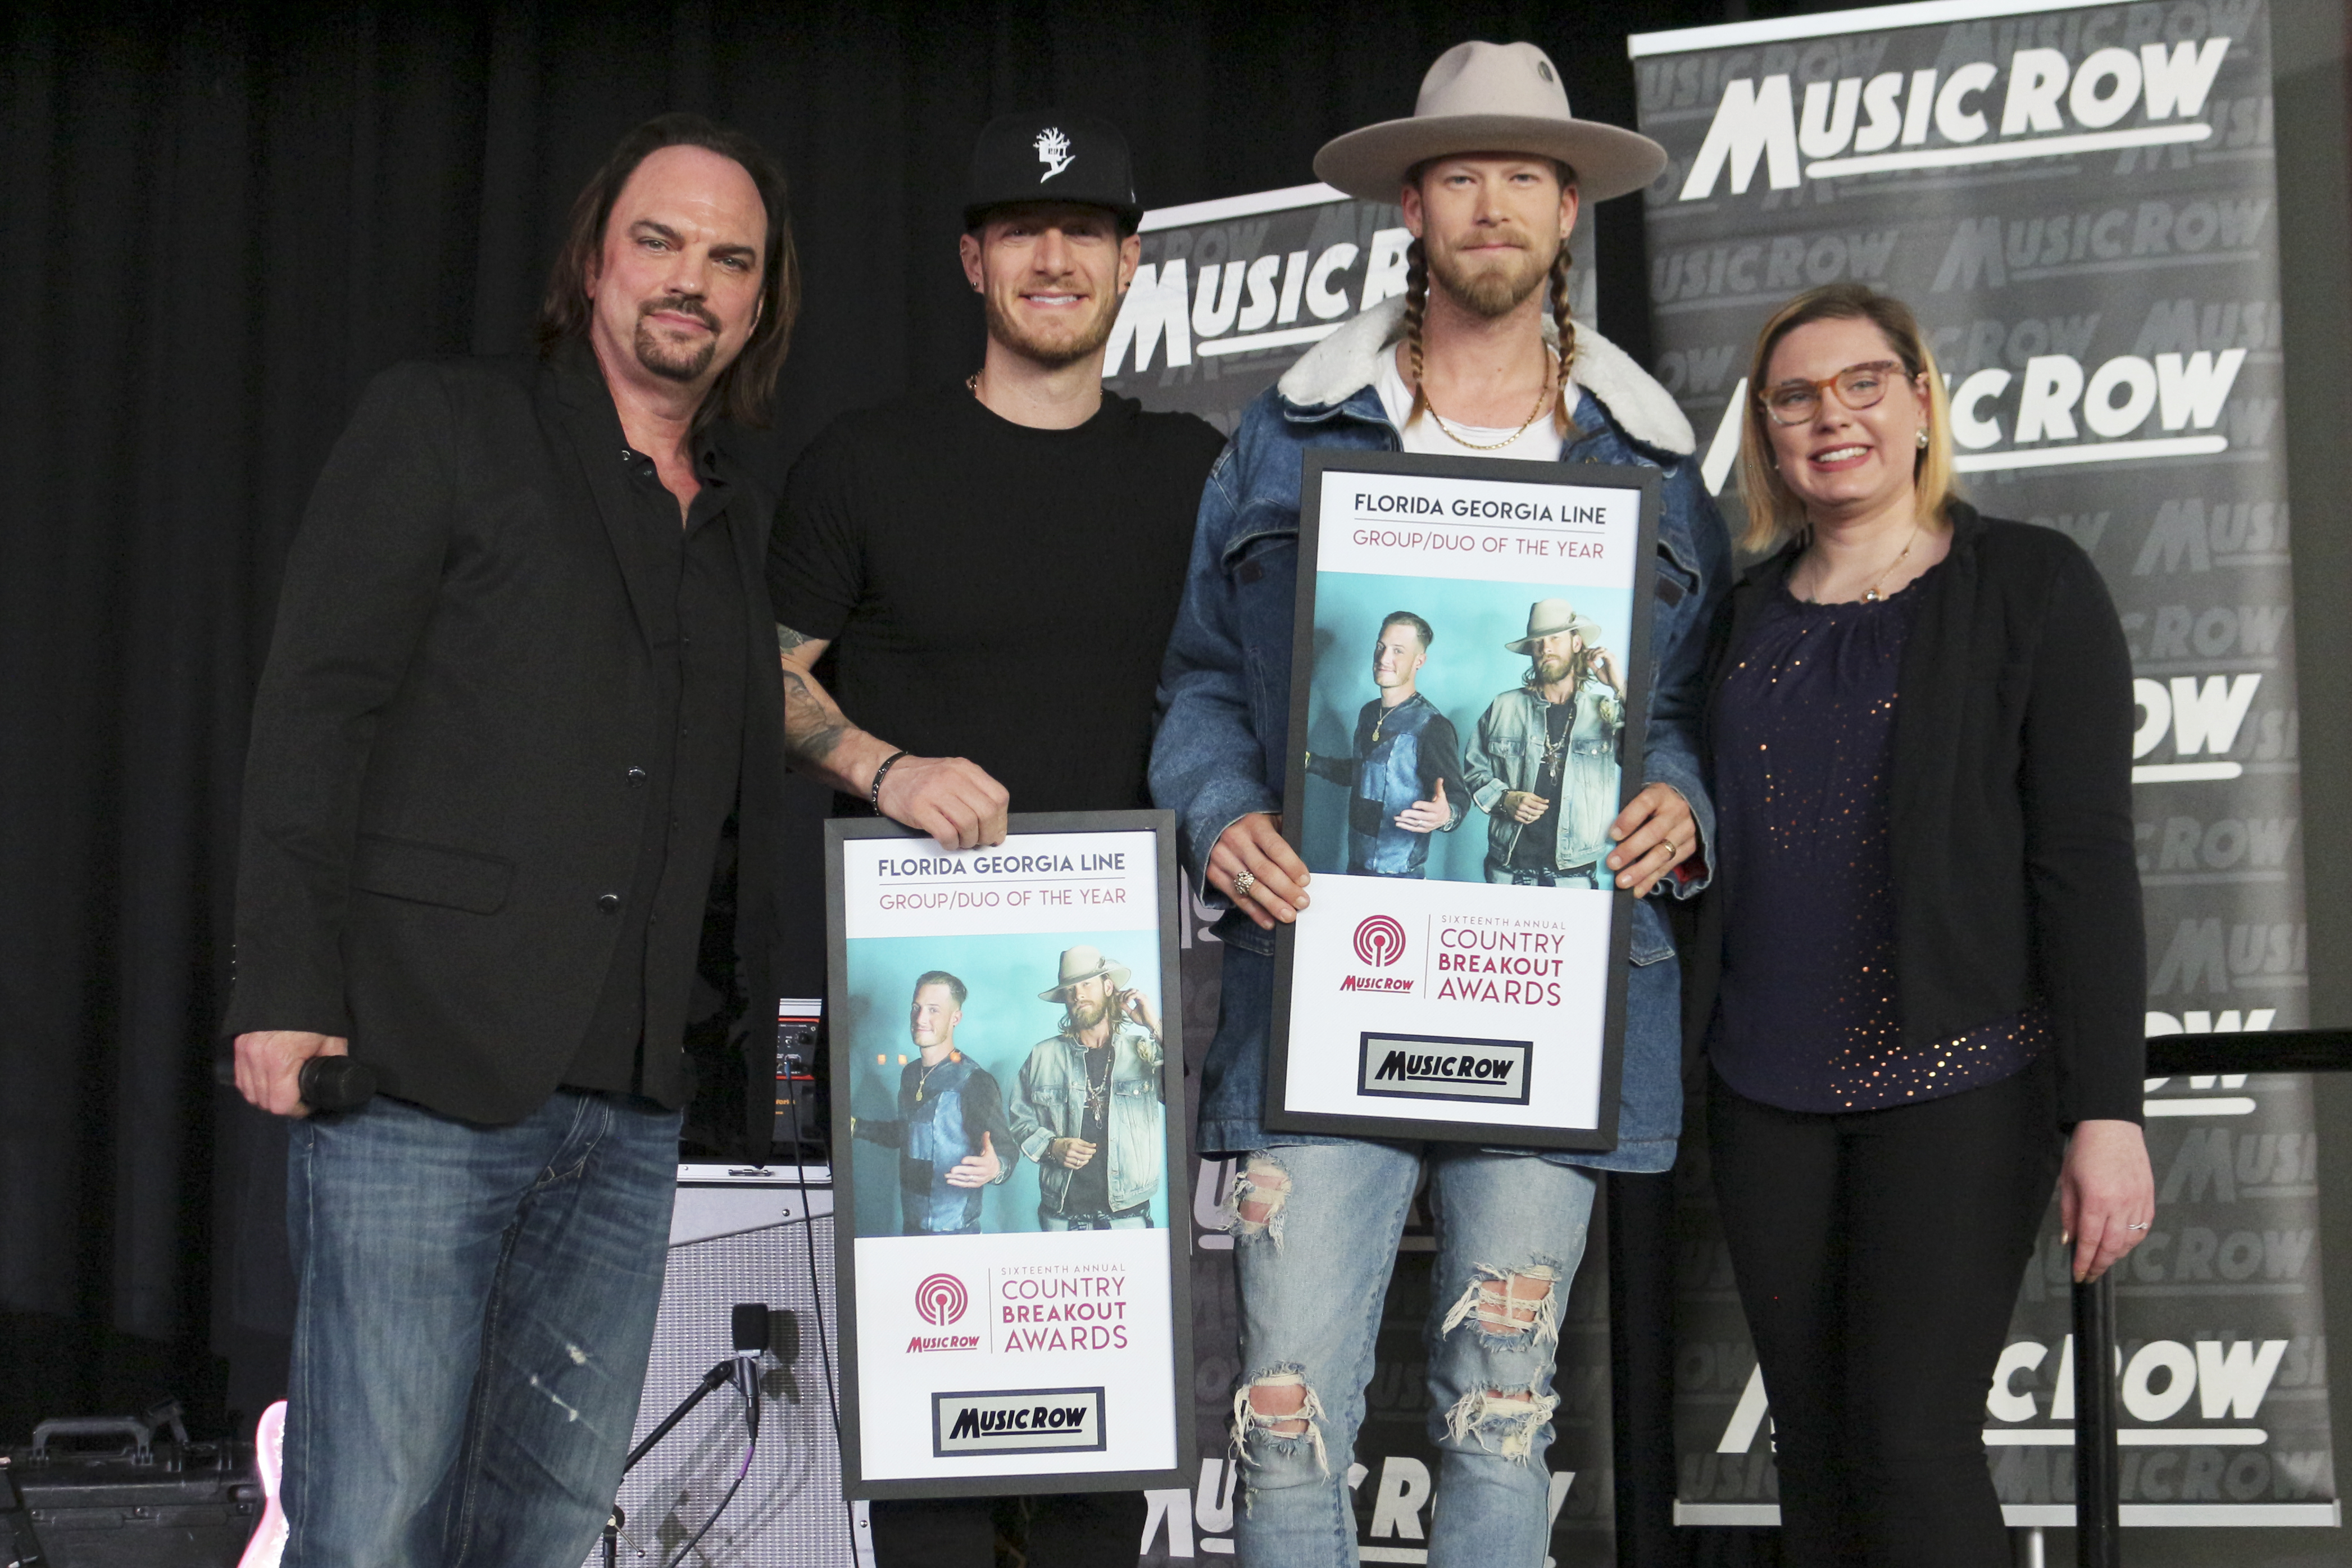 Bobby Karl Works The Room Musicrows Countrybreakout Awards